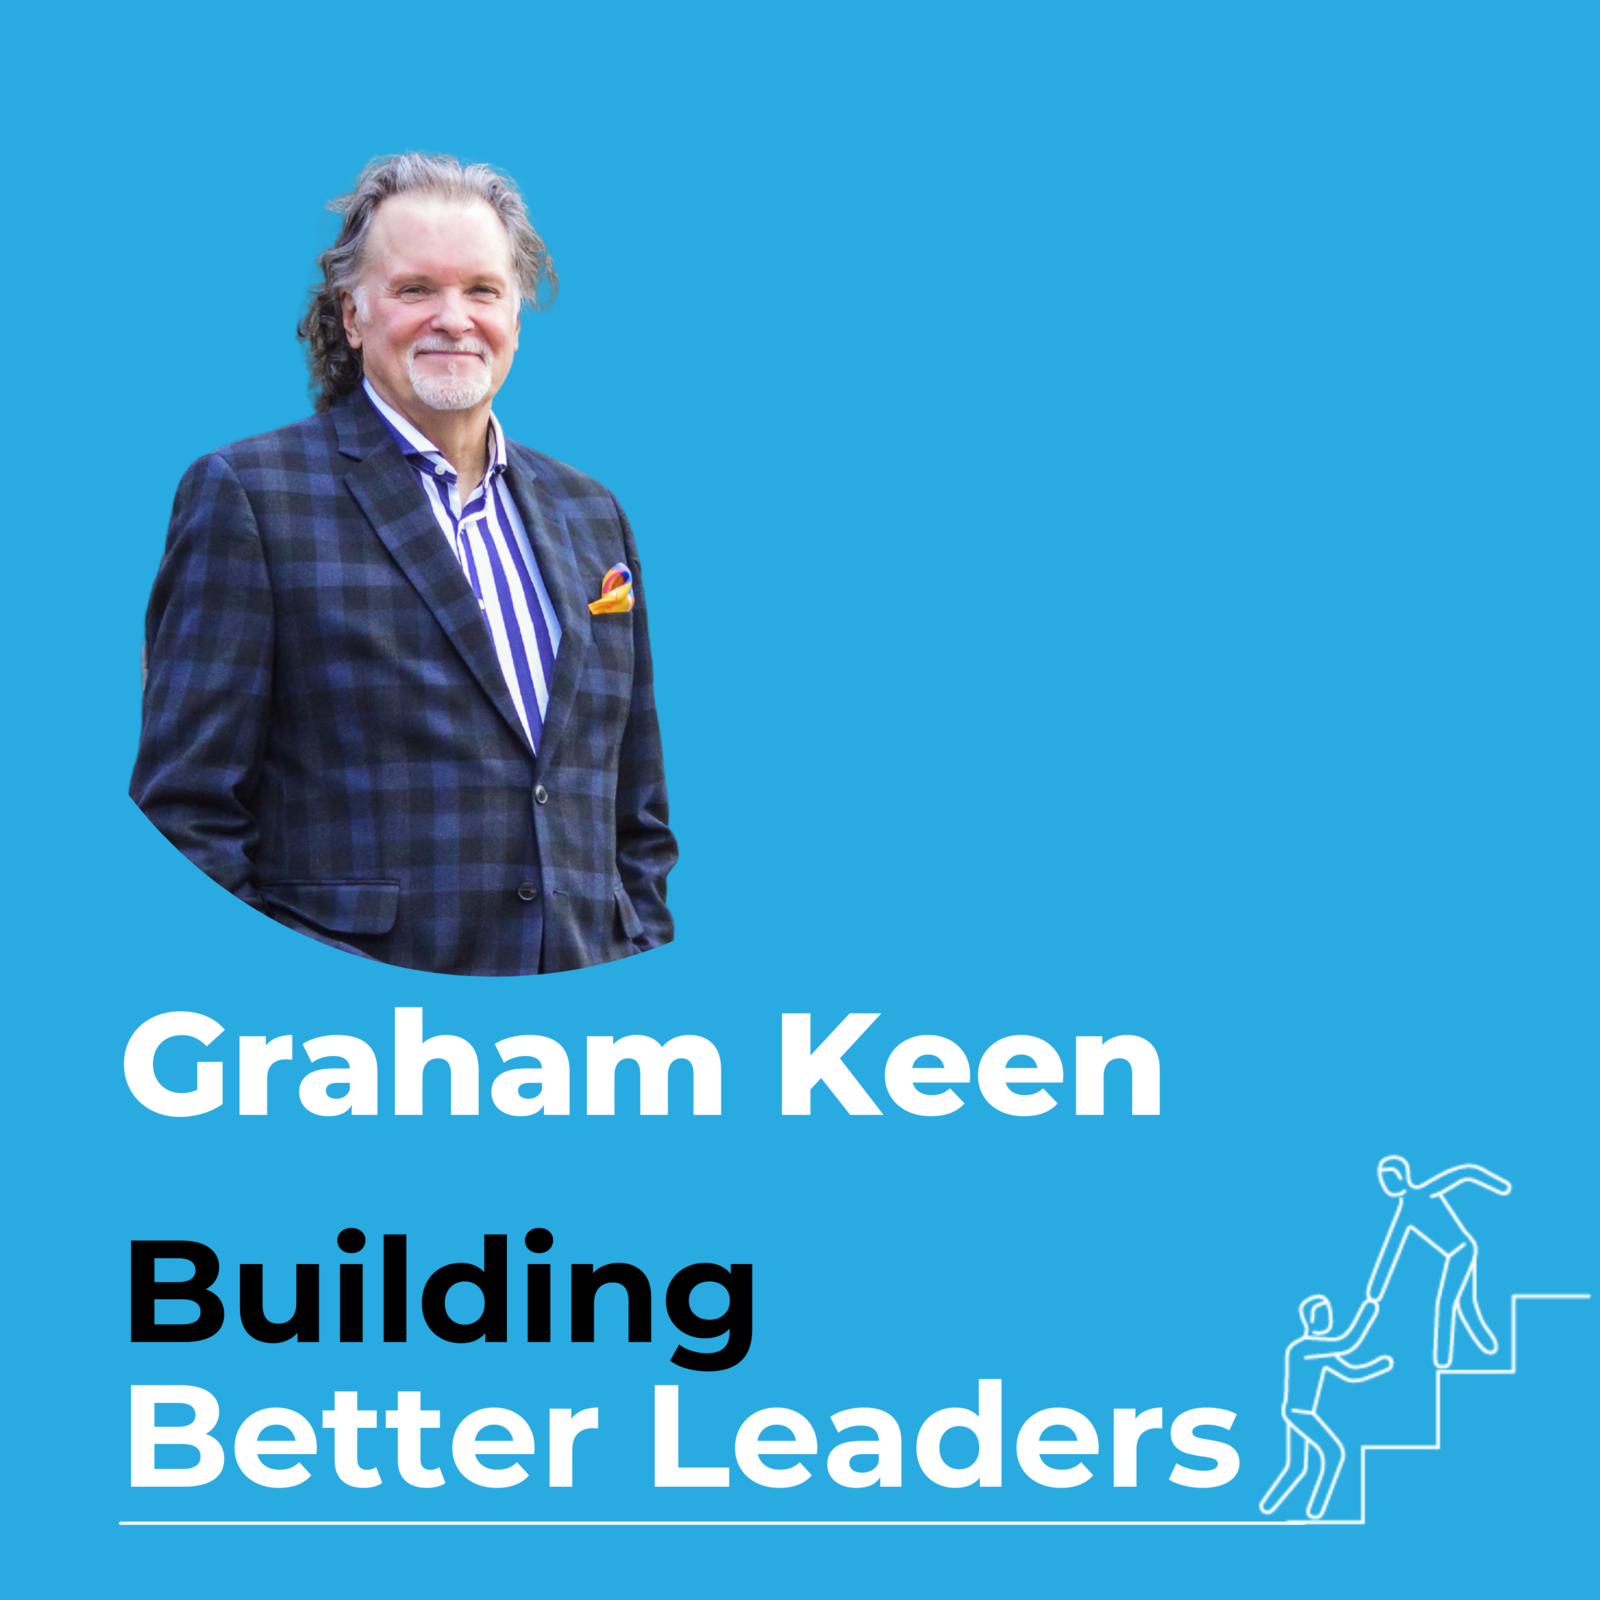 45: #45 Positive Leaders, Positive Change with Graham Keen